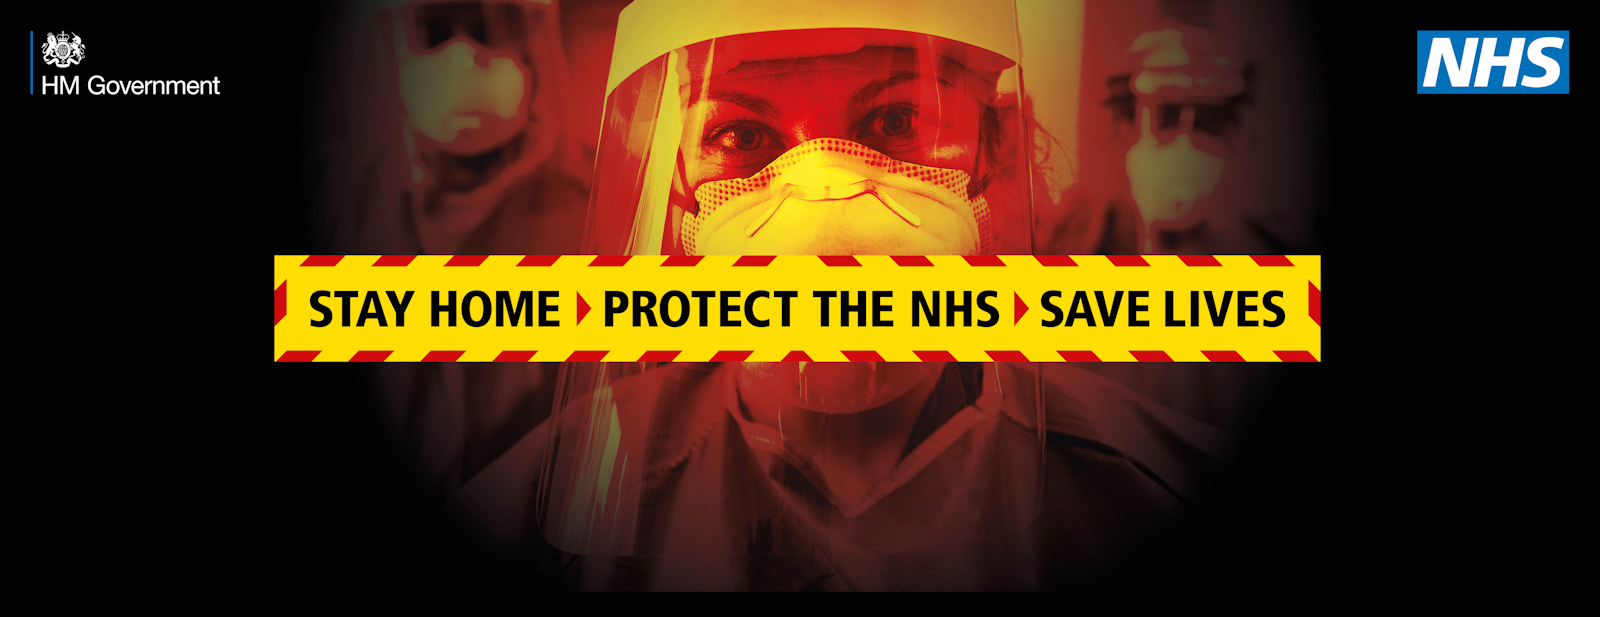 Protect the NHS, stay at home